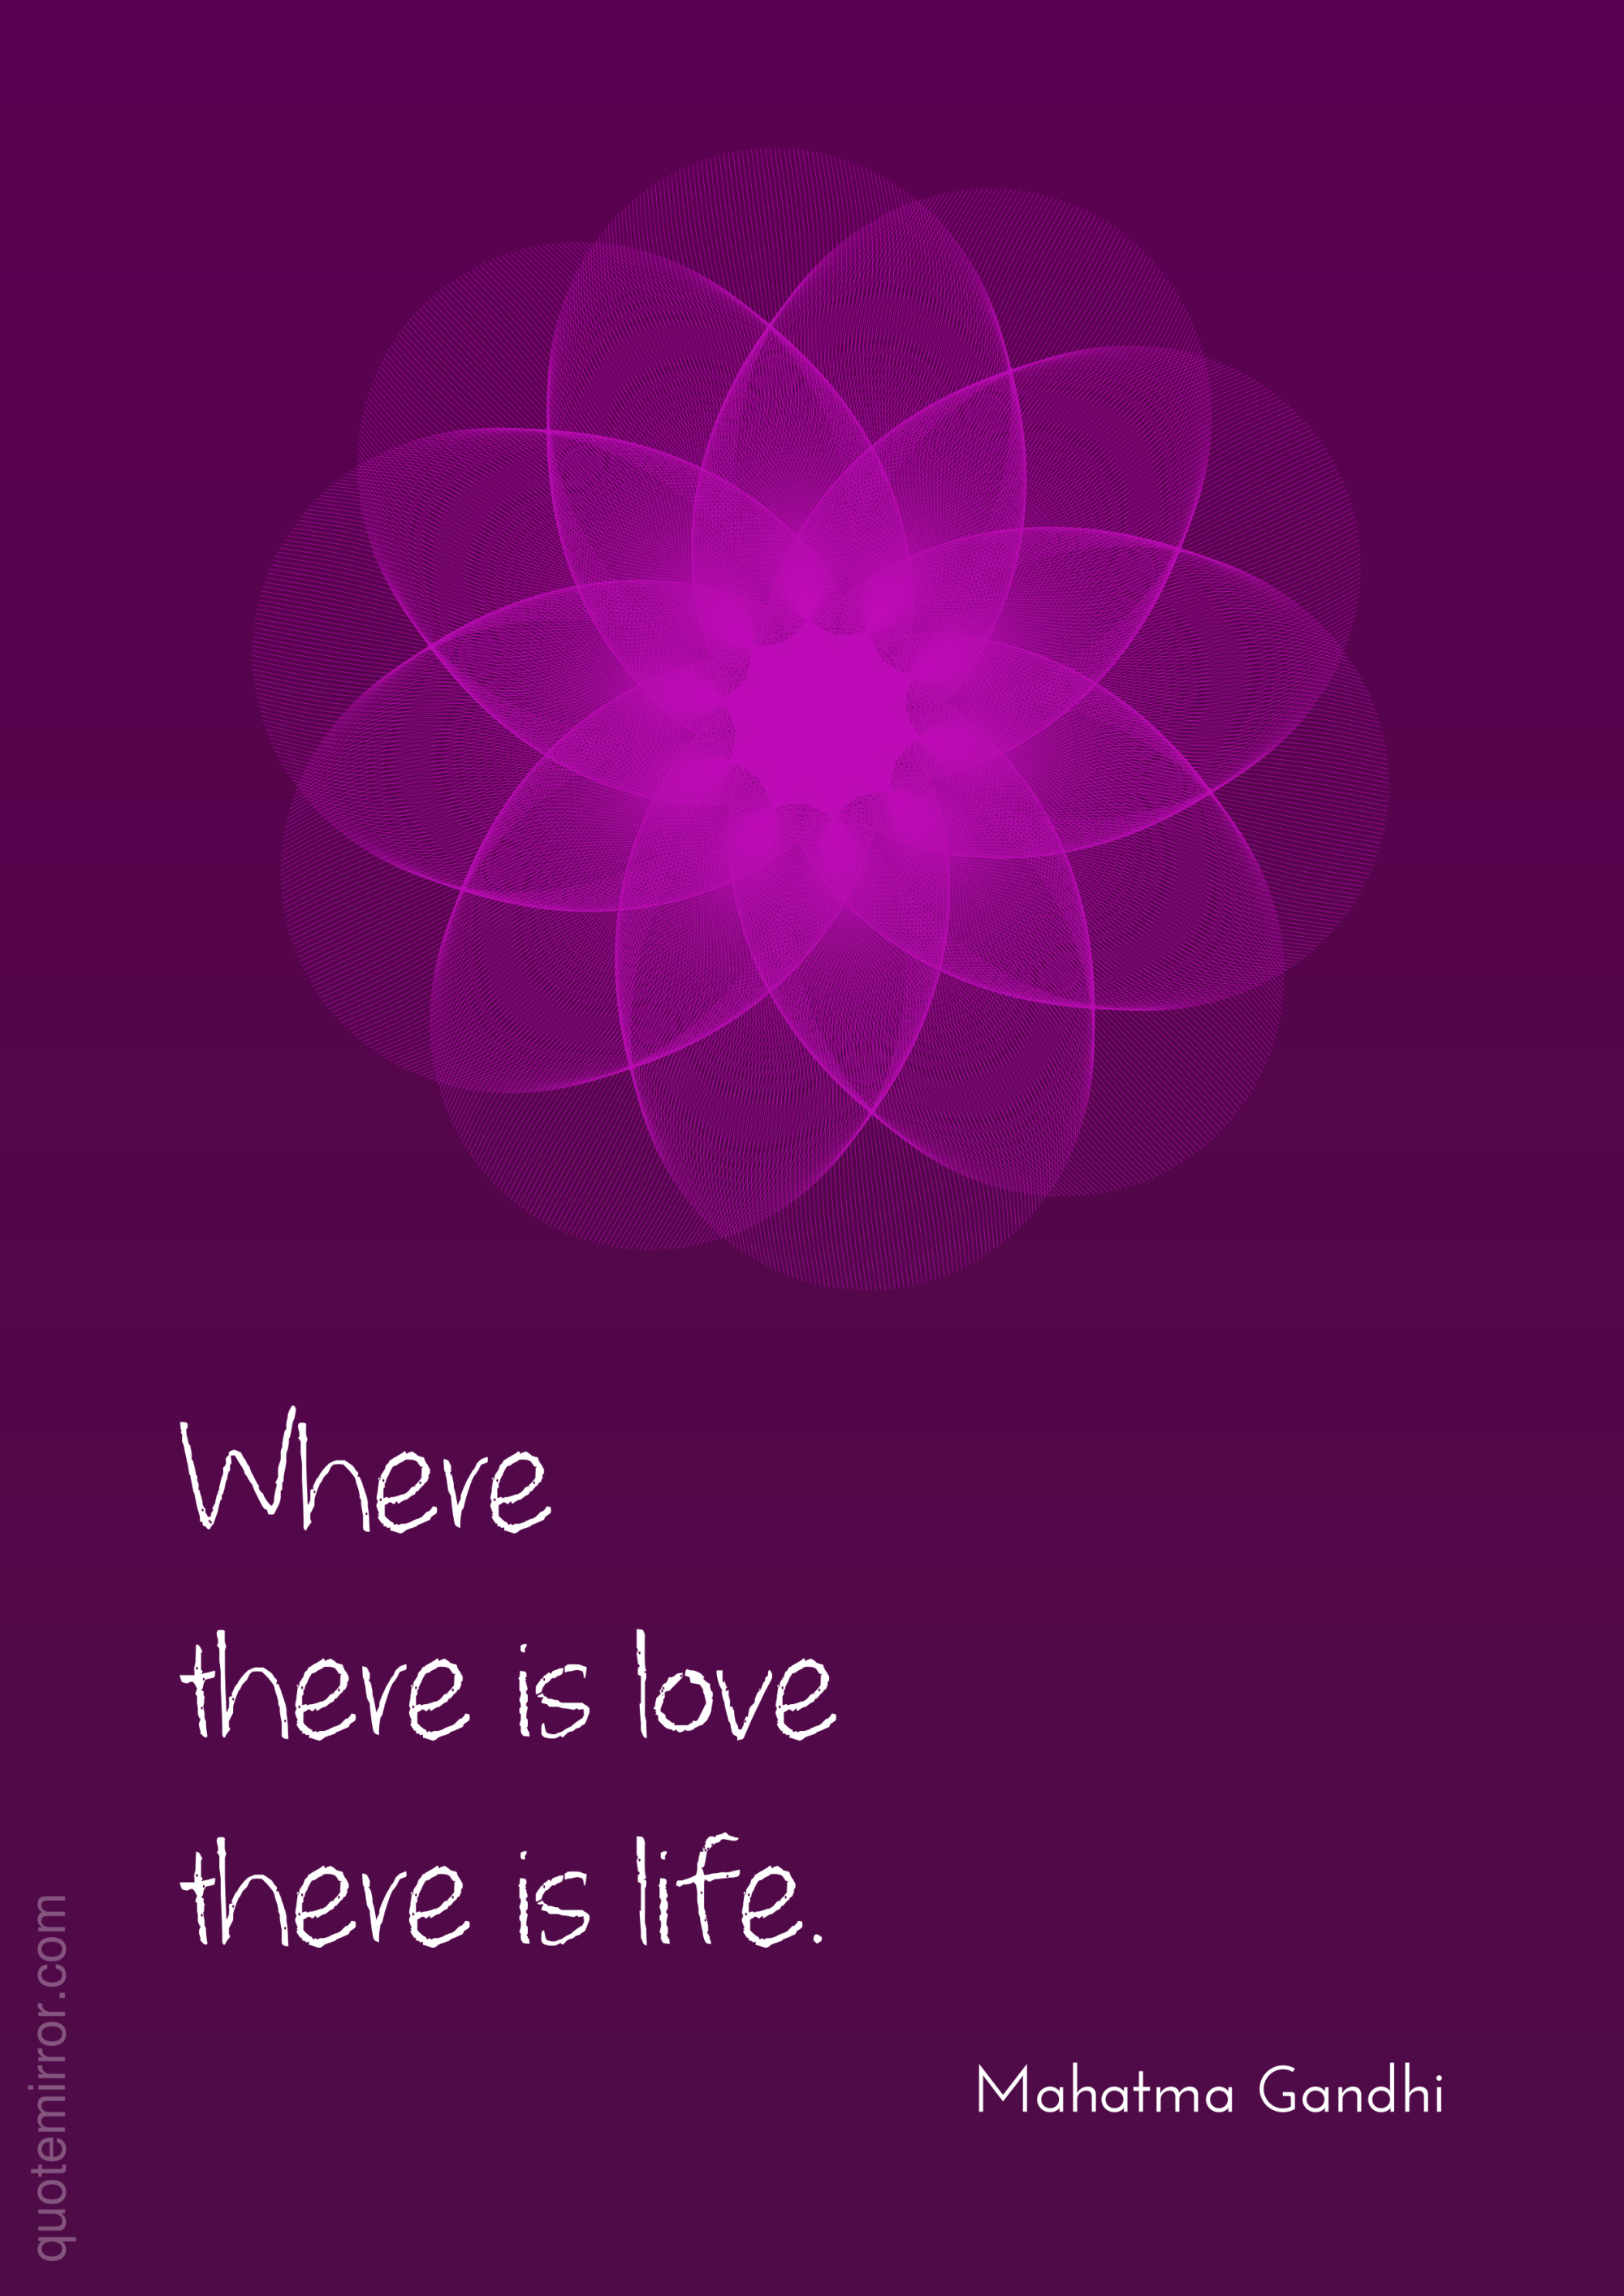 Gandhi Quotes On Love Where There Is Love  Gandhi Life Mahatma Gandhi And Mahatma